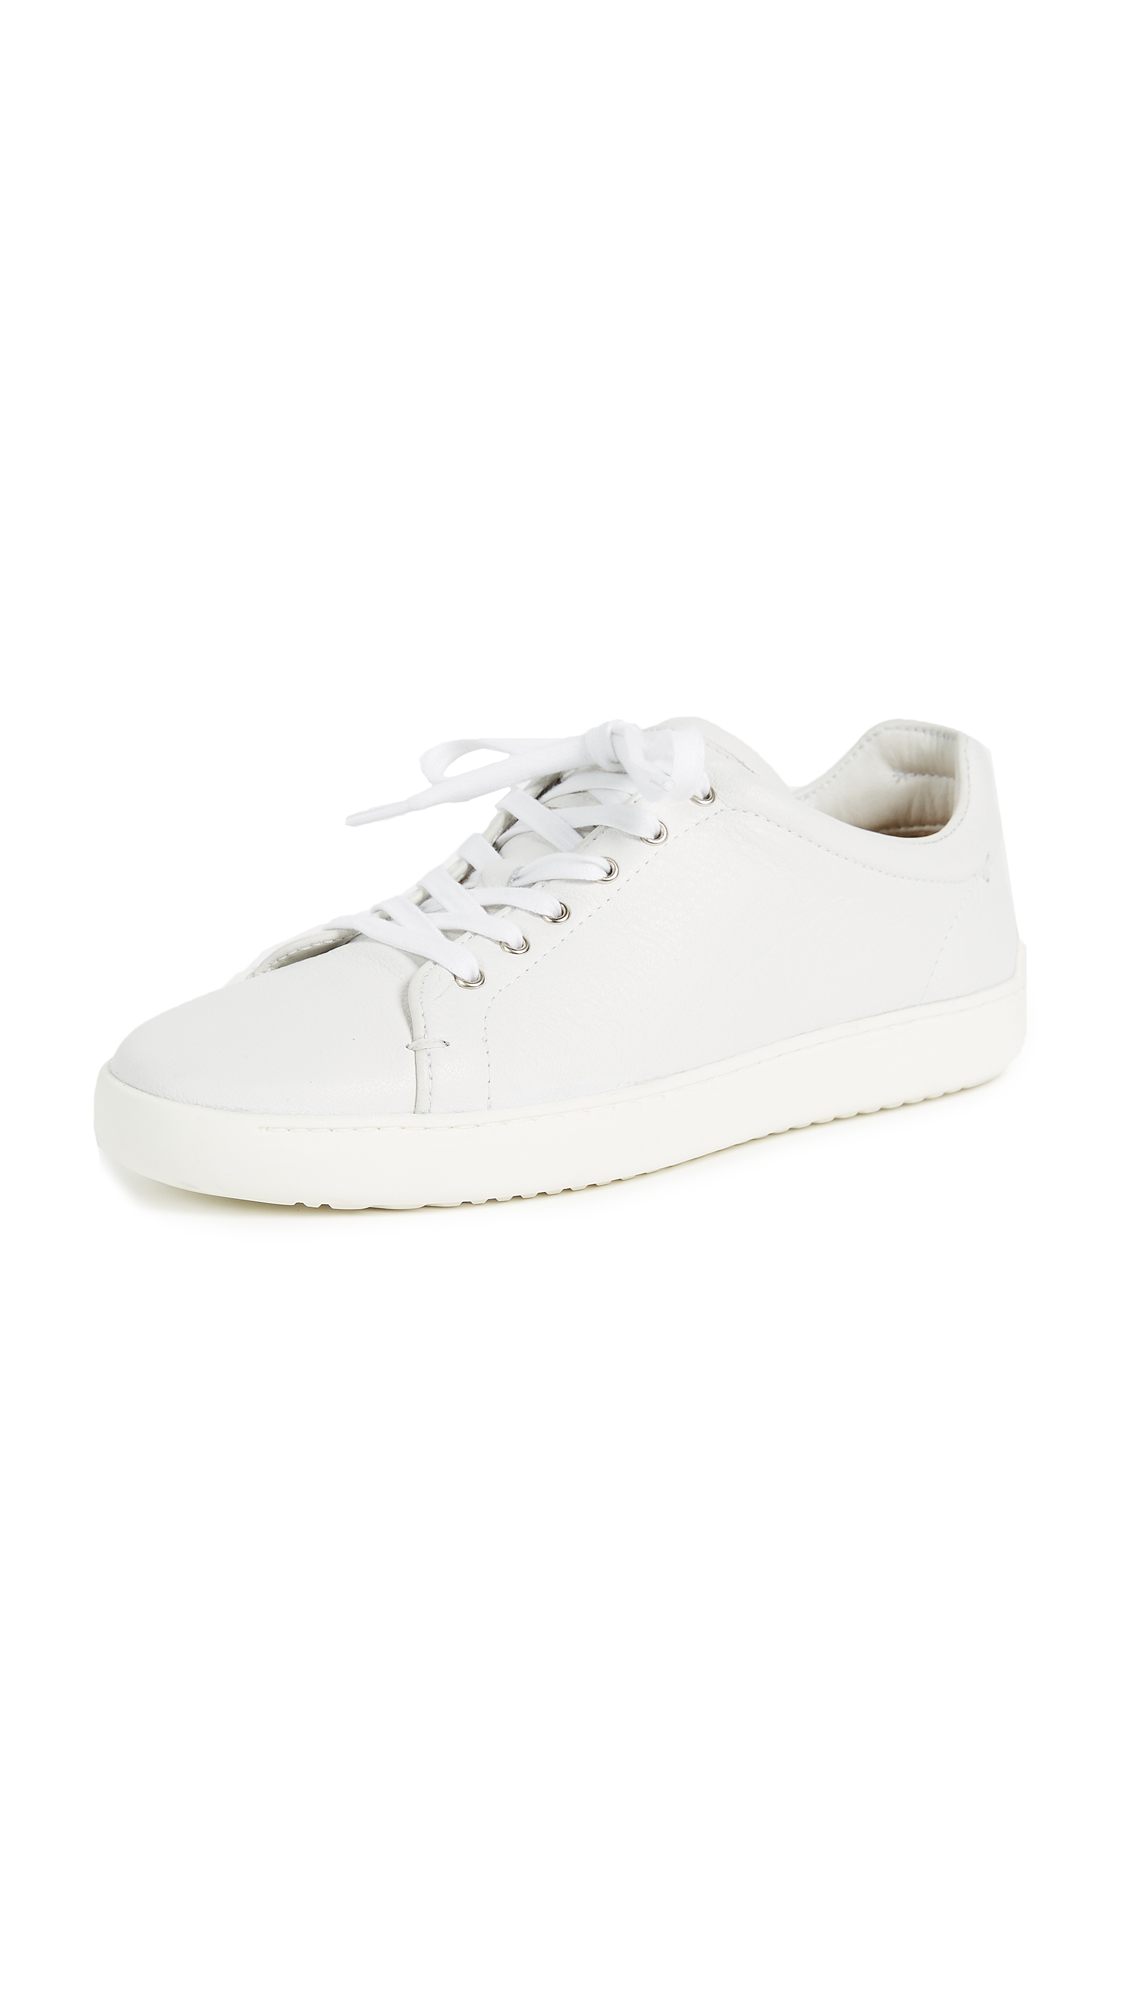 Rag & Bone Kent Lace Up Sneakers - White